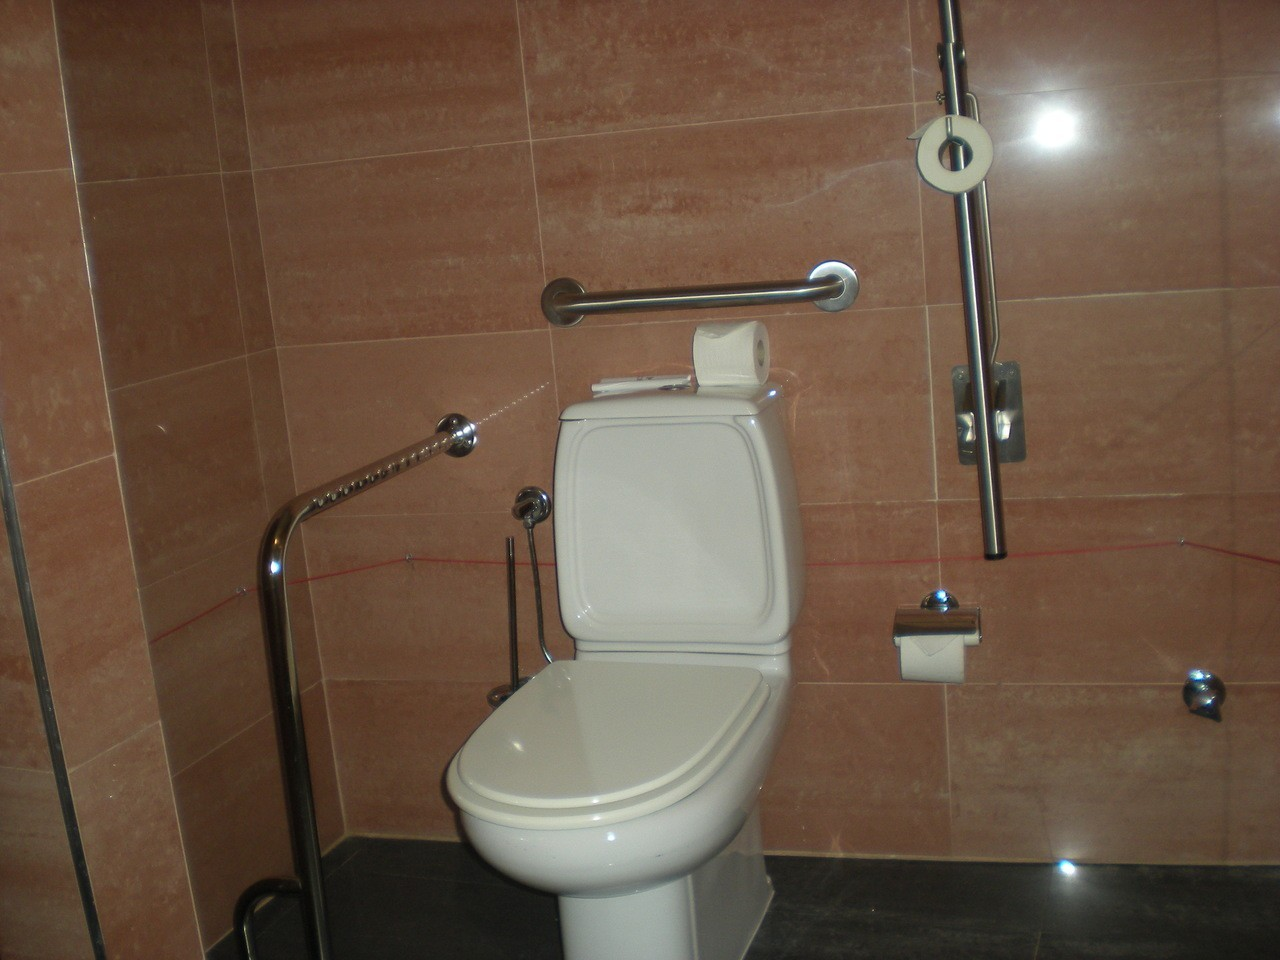 Photo/s of 1º adapted room - general information - in room bathroom - toilet accom.